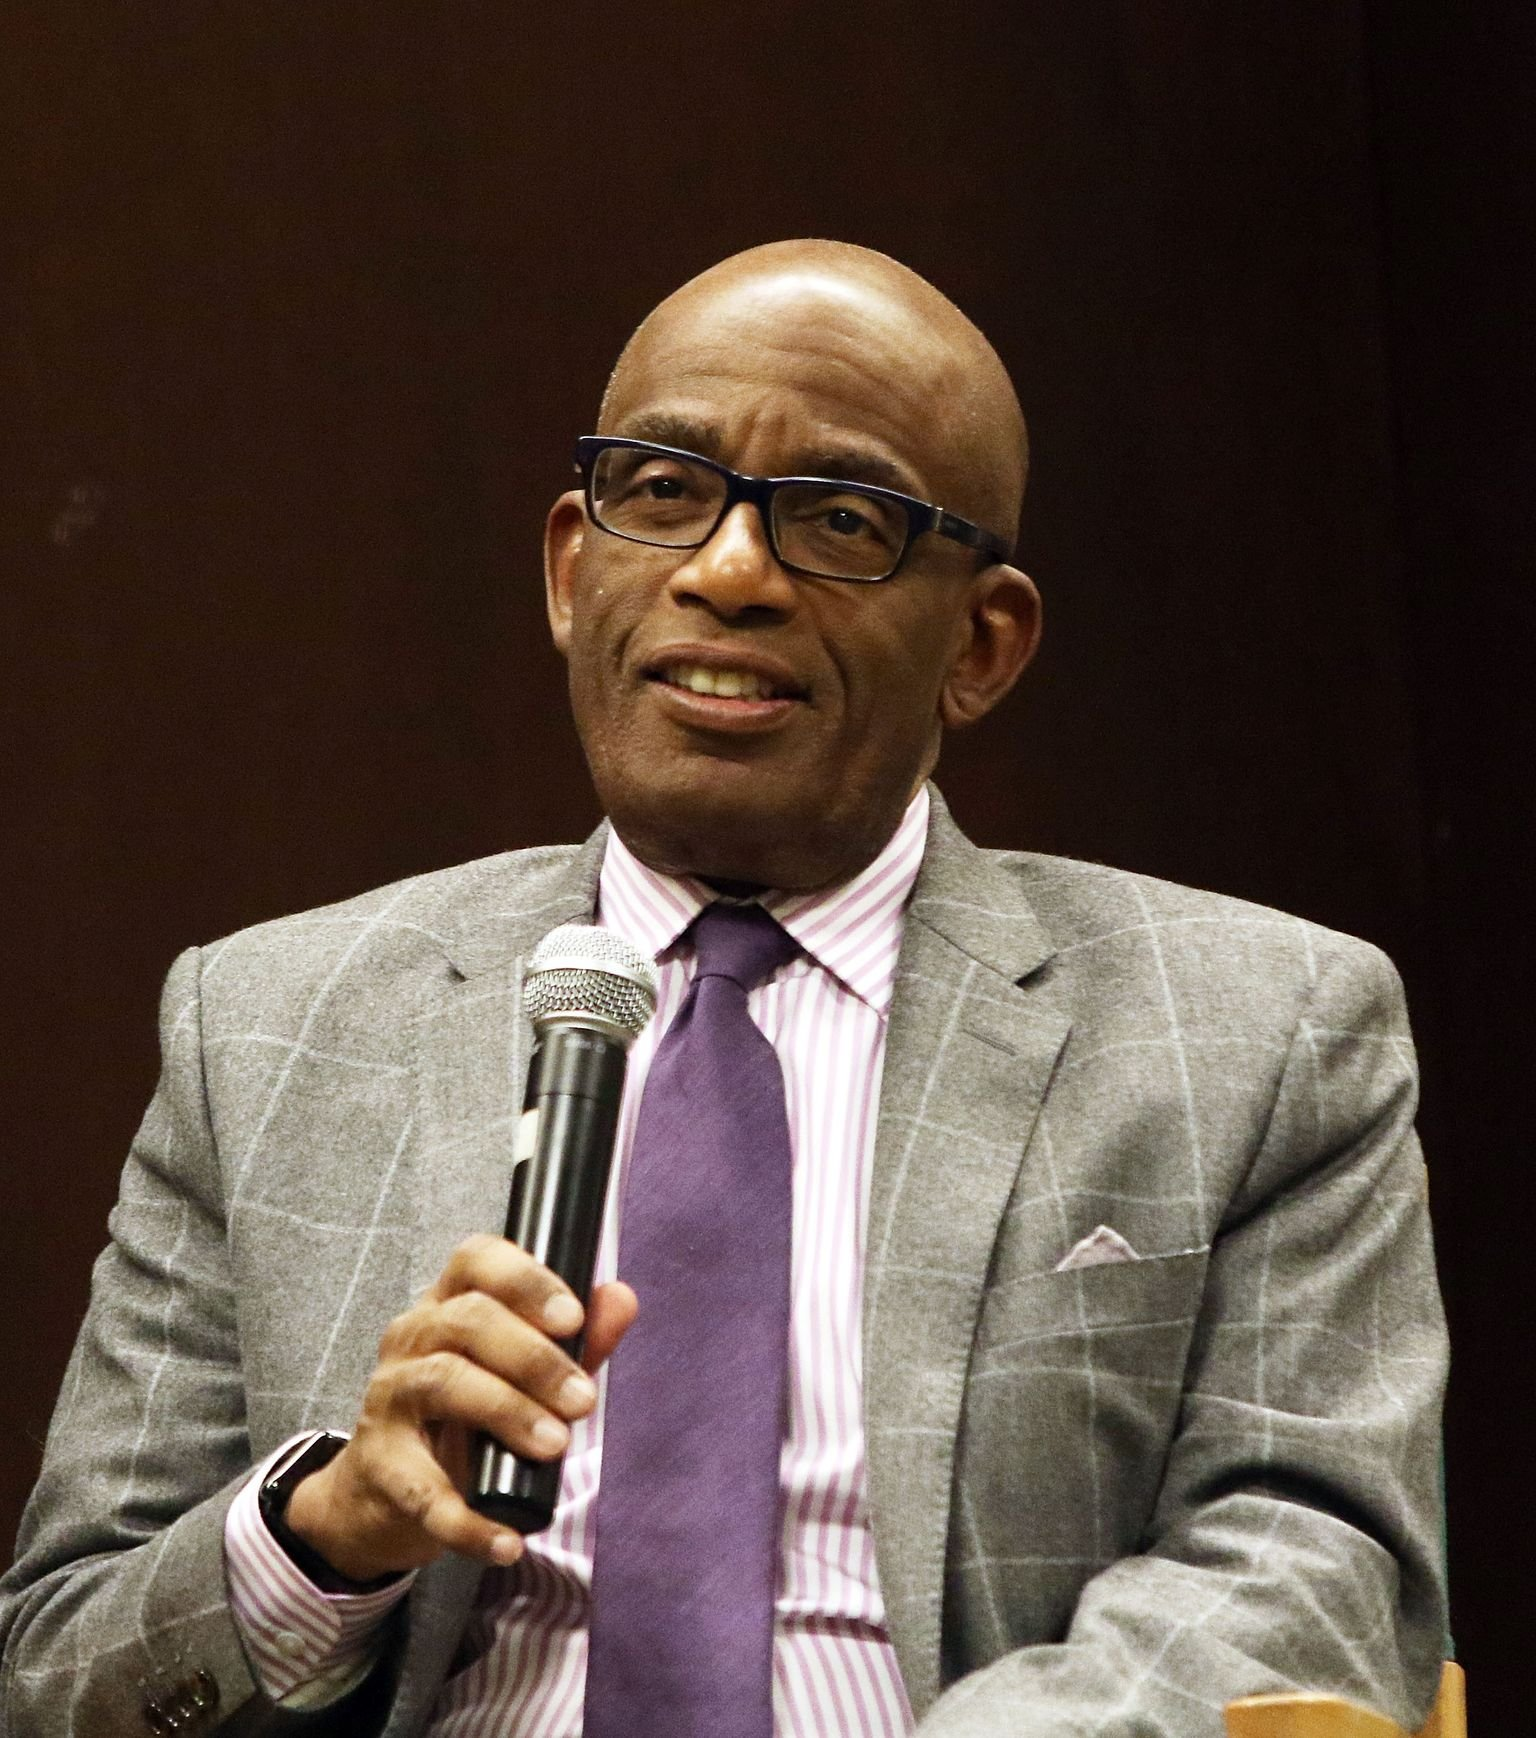 Al Roker promotes his book at Barnes & Noble 82nd Street on January 7, 2016 in New York City   Photo: Getty Images